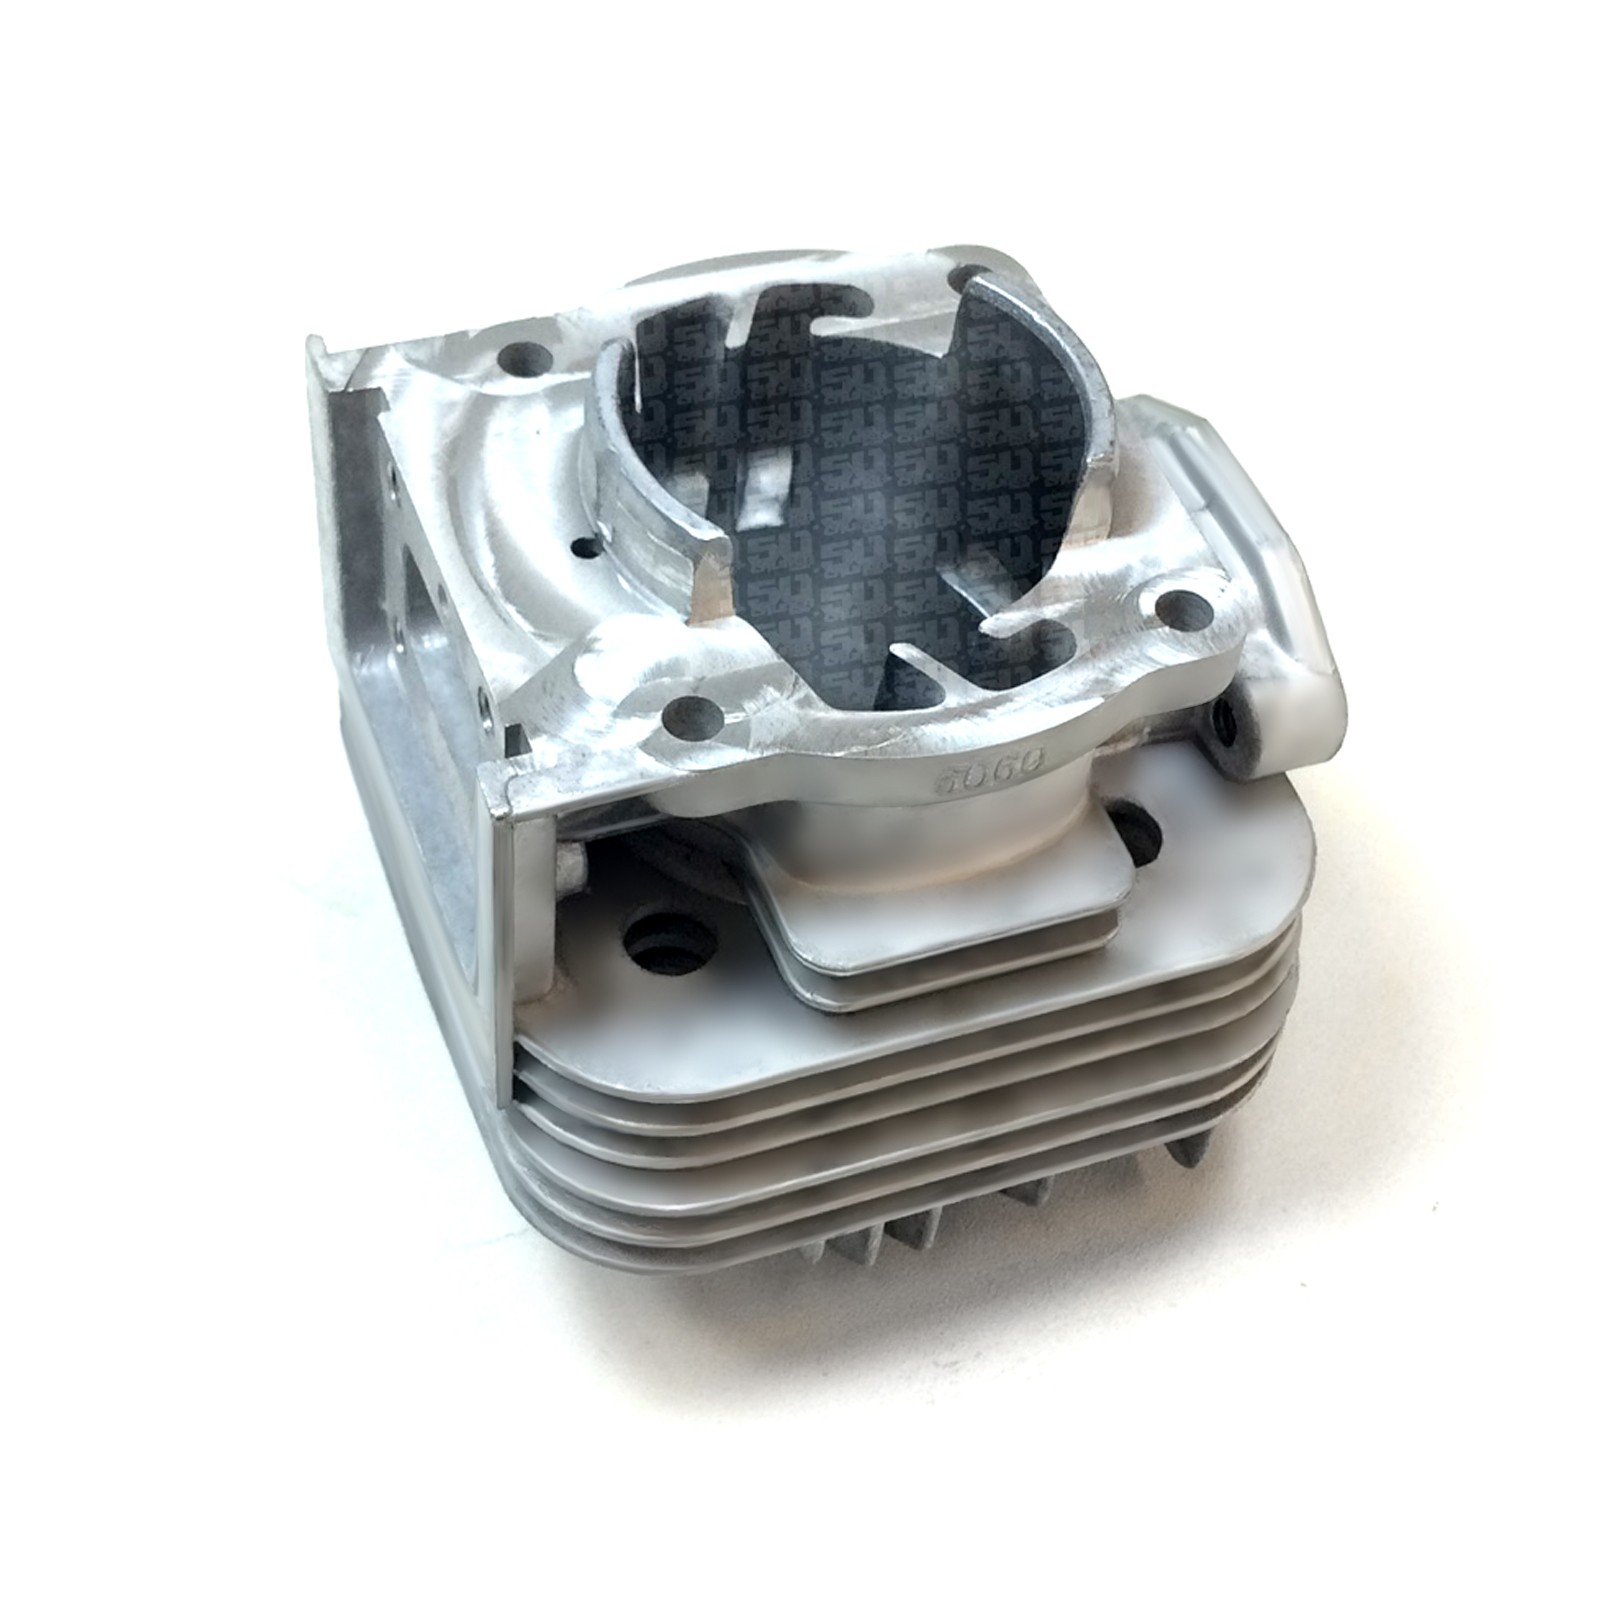 ScooterX High Performance Race Head that increases compression and